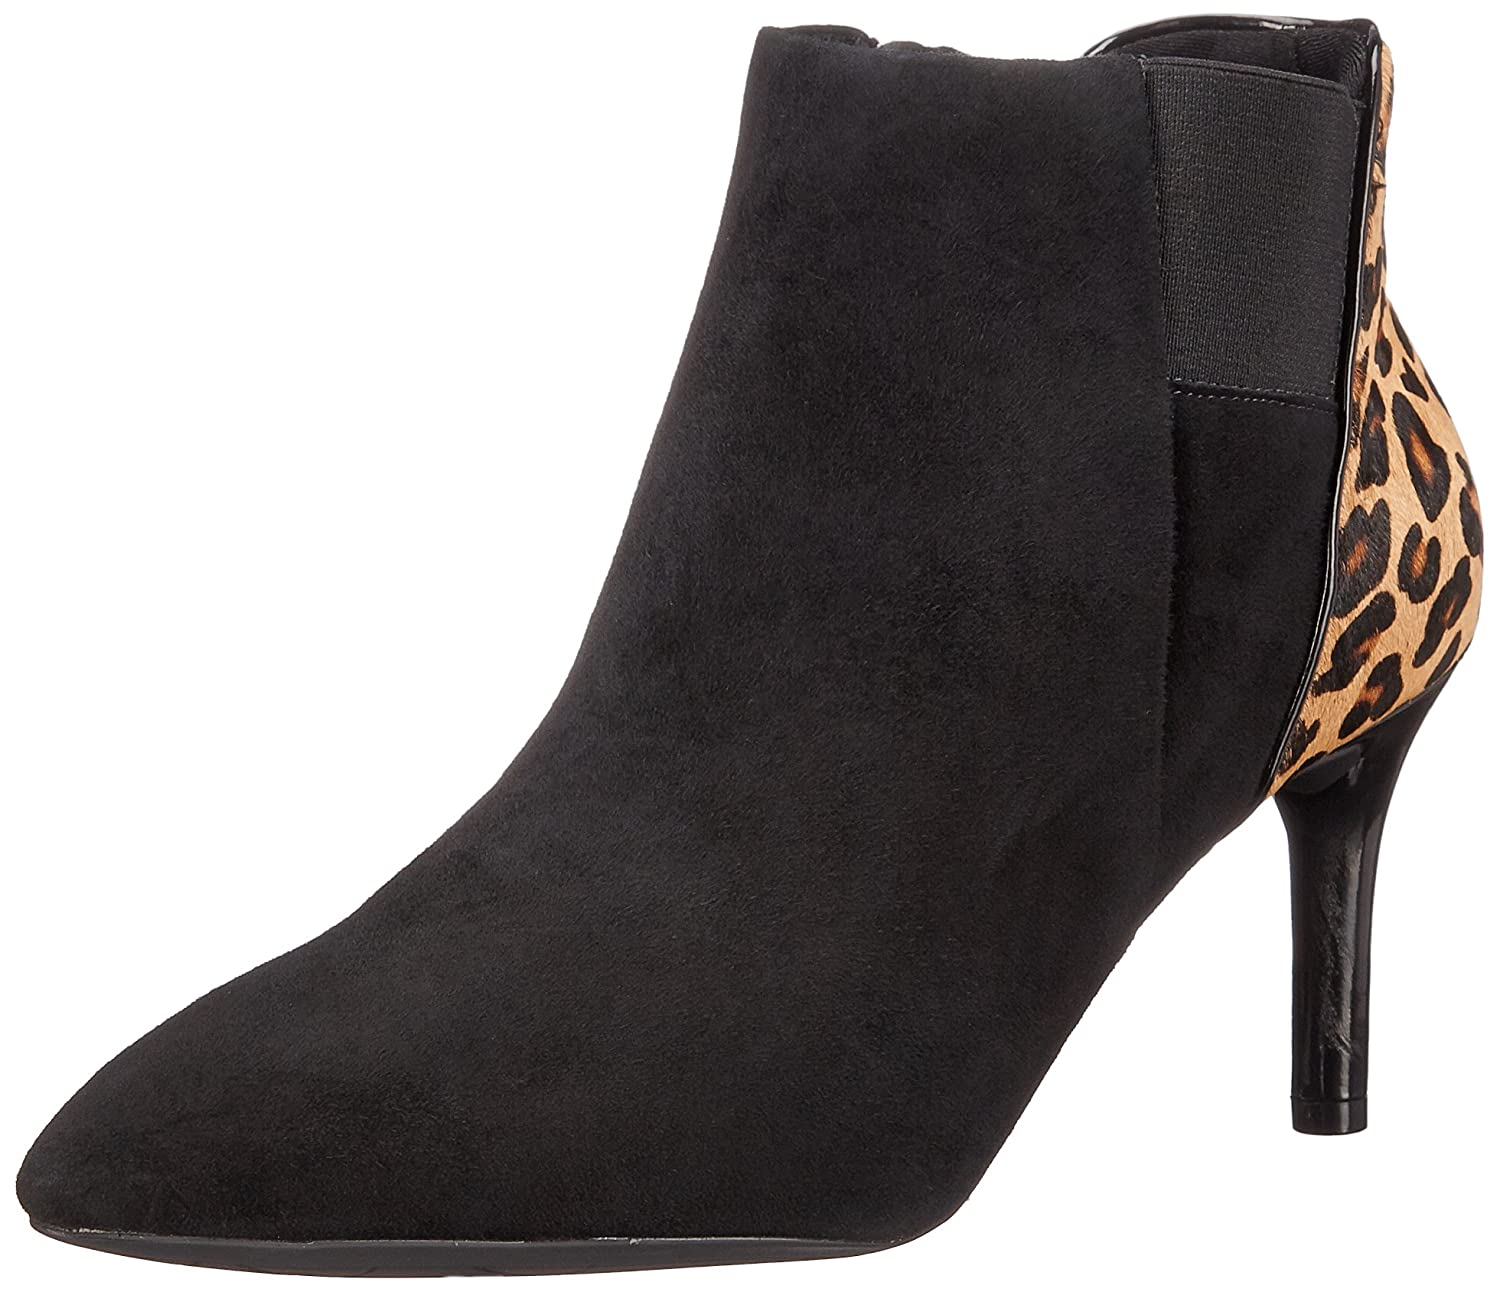 Rockport Women's Total Motion 75mm Layer Boot B00T5L4A1A 5 B(M) US|Black Kid Suede/Leopard Hair on